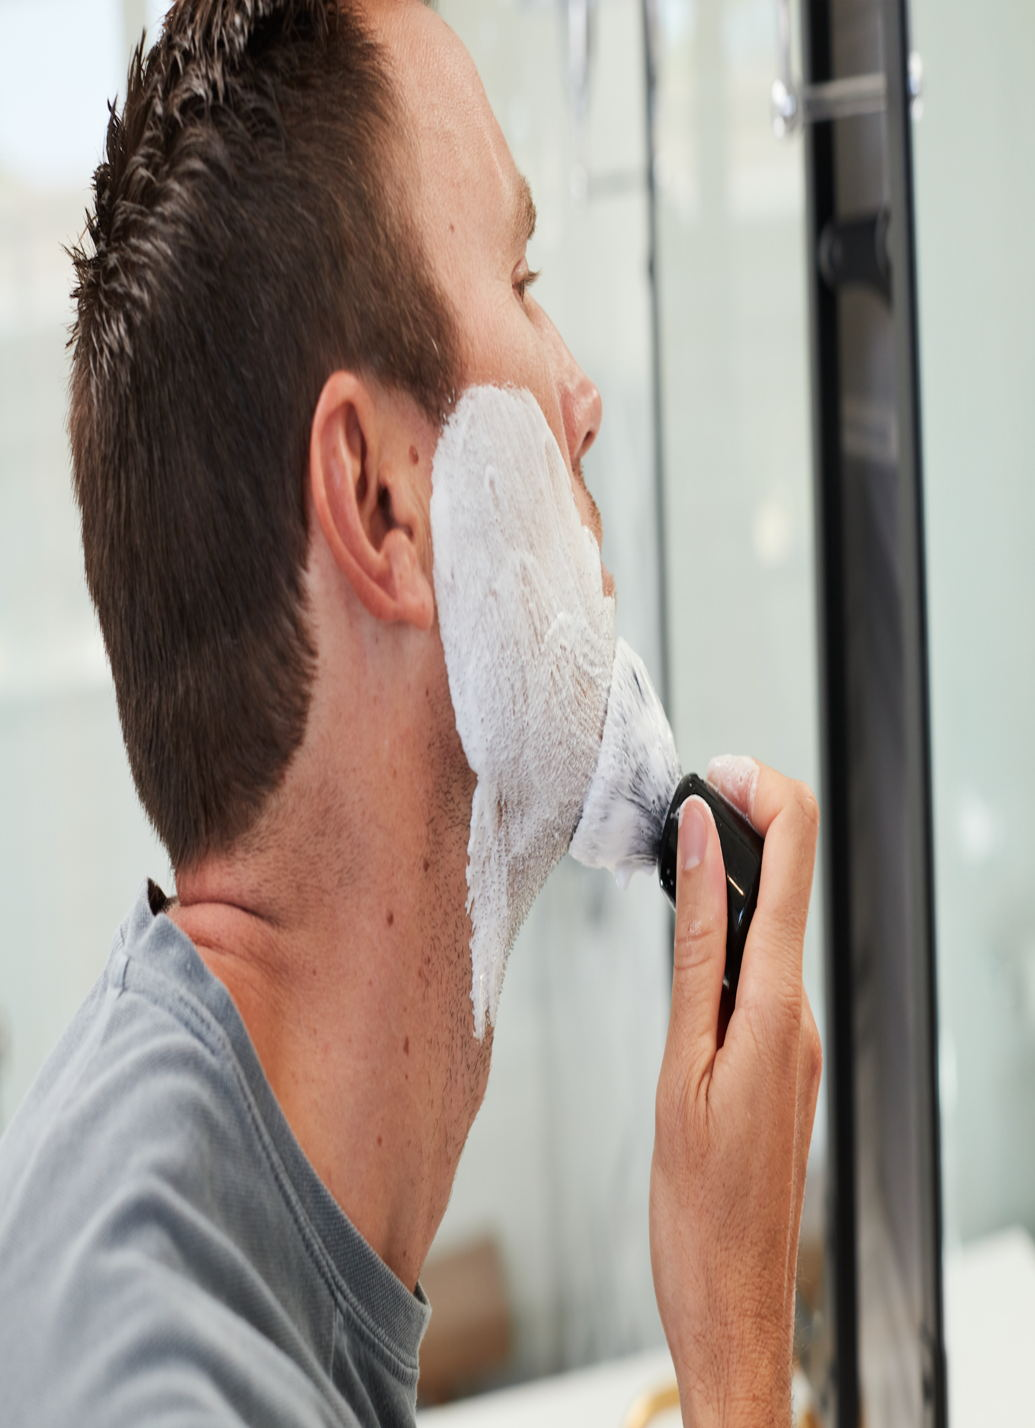 Man with shaving cream on his face applying shaving cream with a shave brush to his chin